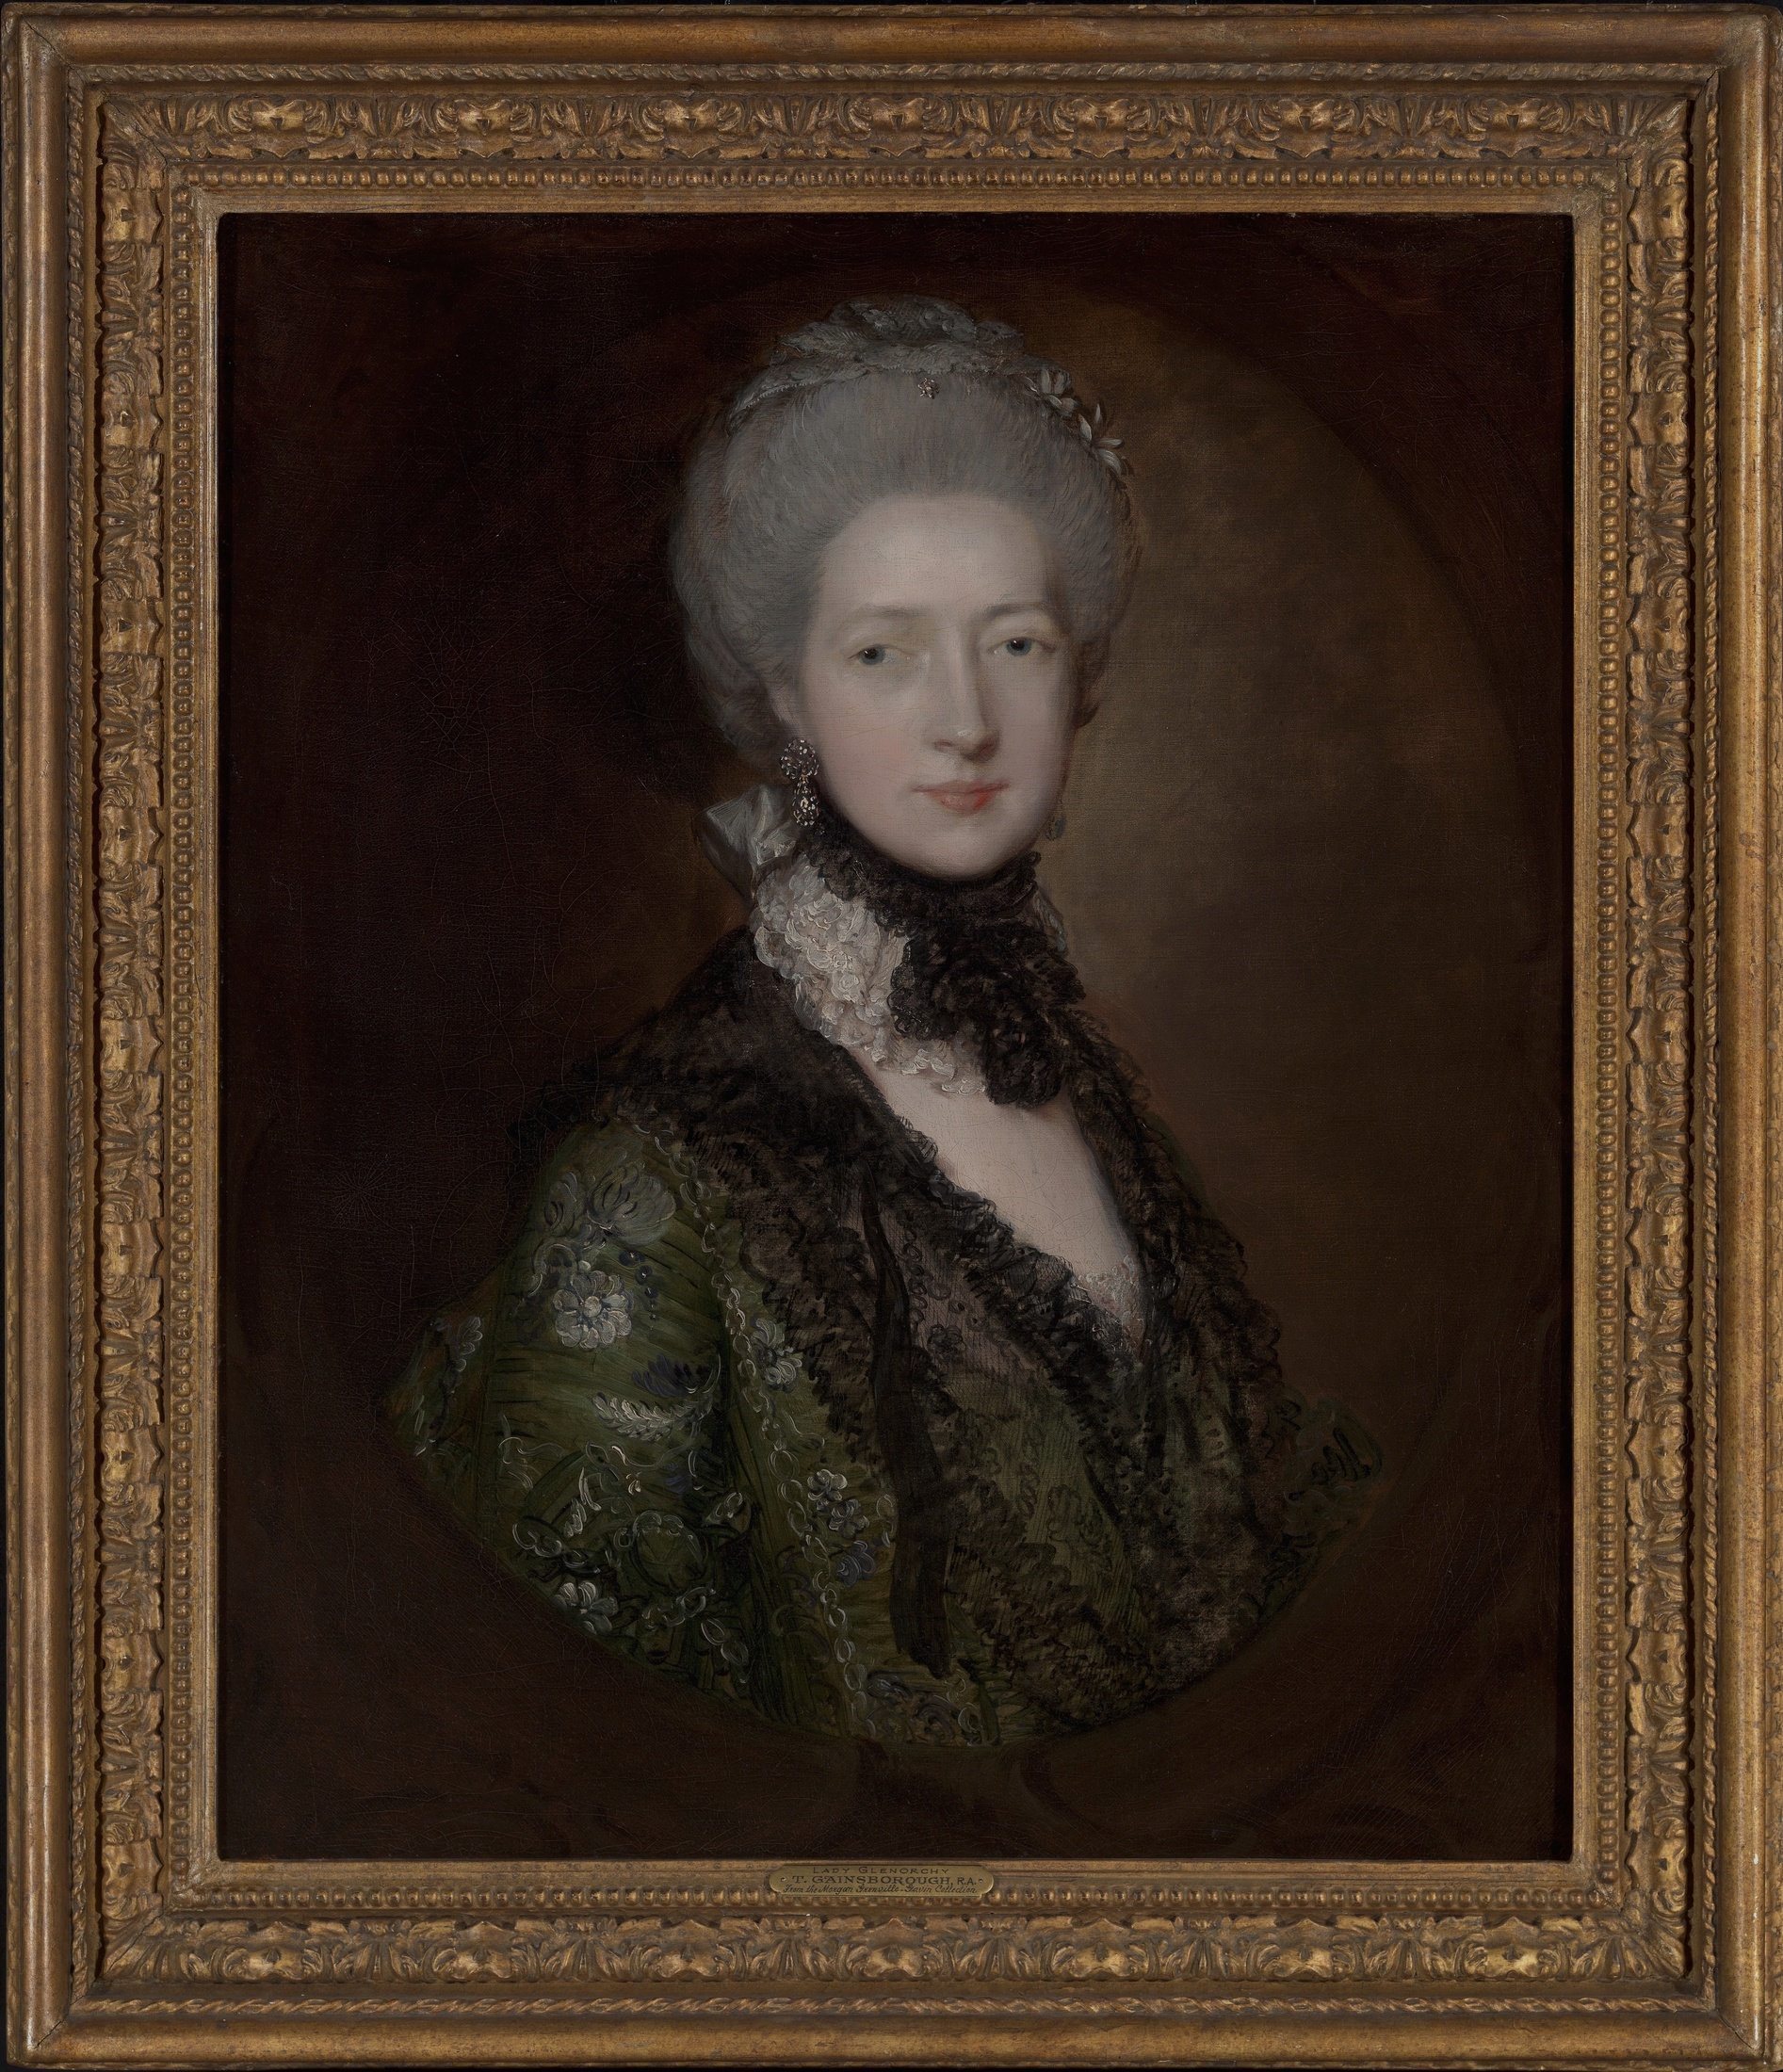 Portrait of Lady Willielma Glenorchy